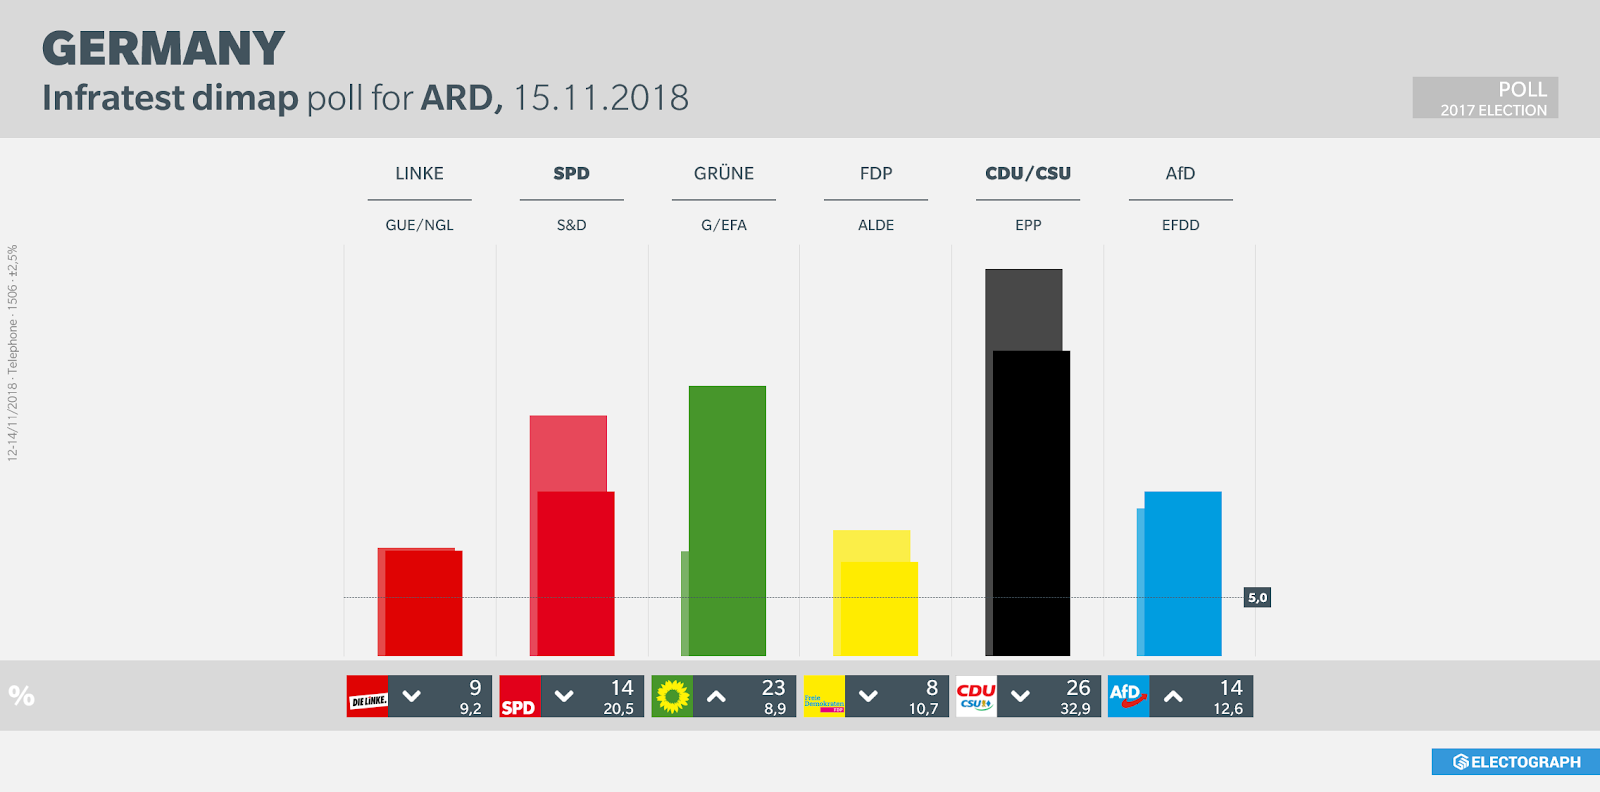 GERMANY: Infratest dimap poll chart for ARD, November 2018